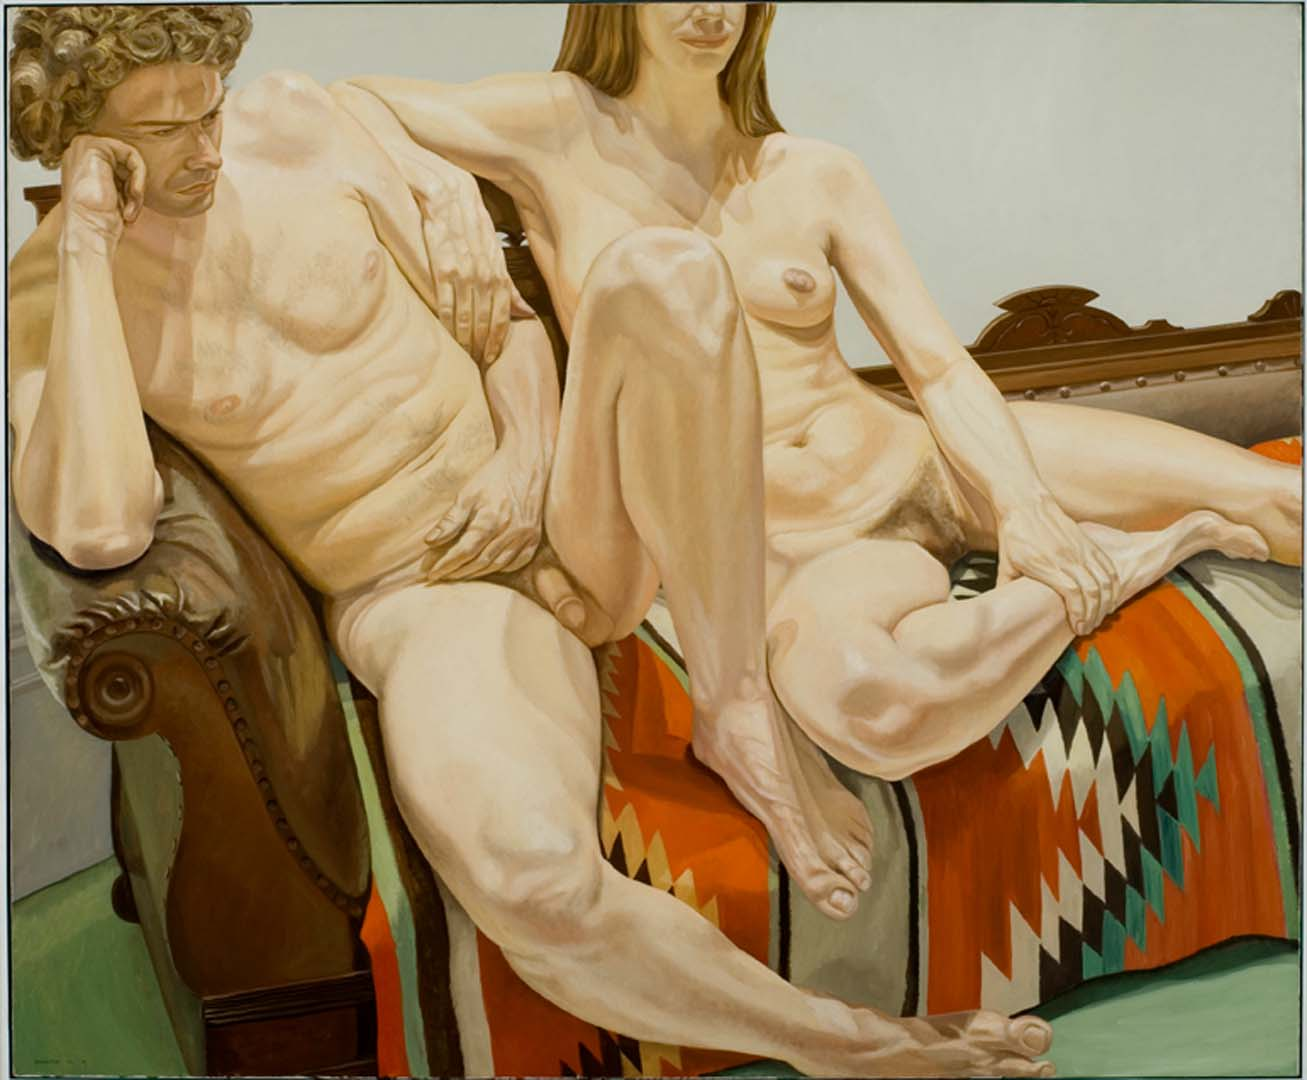 1973 Male and Female Models on Victorian Sofa with Indian Blanket Oil on Canvas 60 x 72